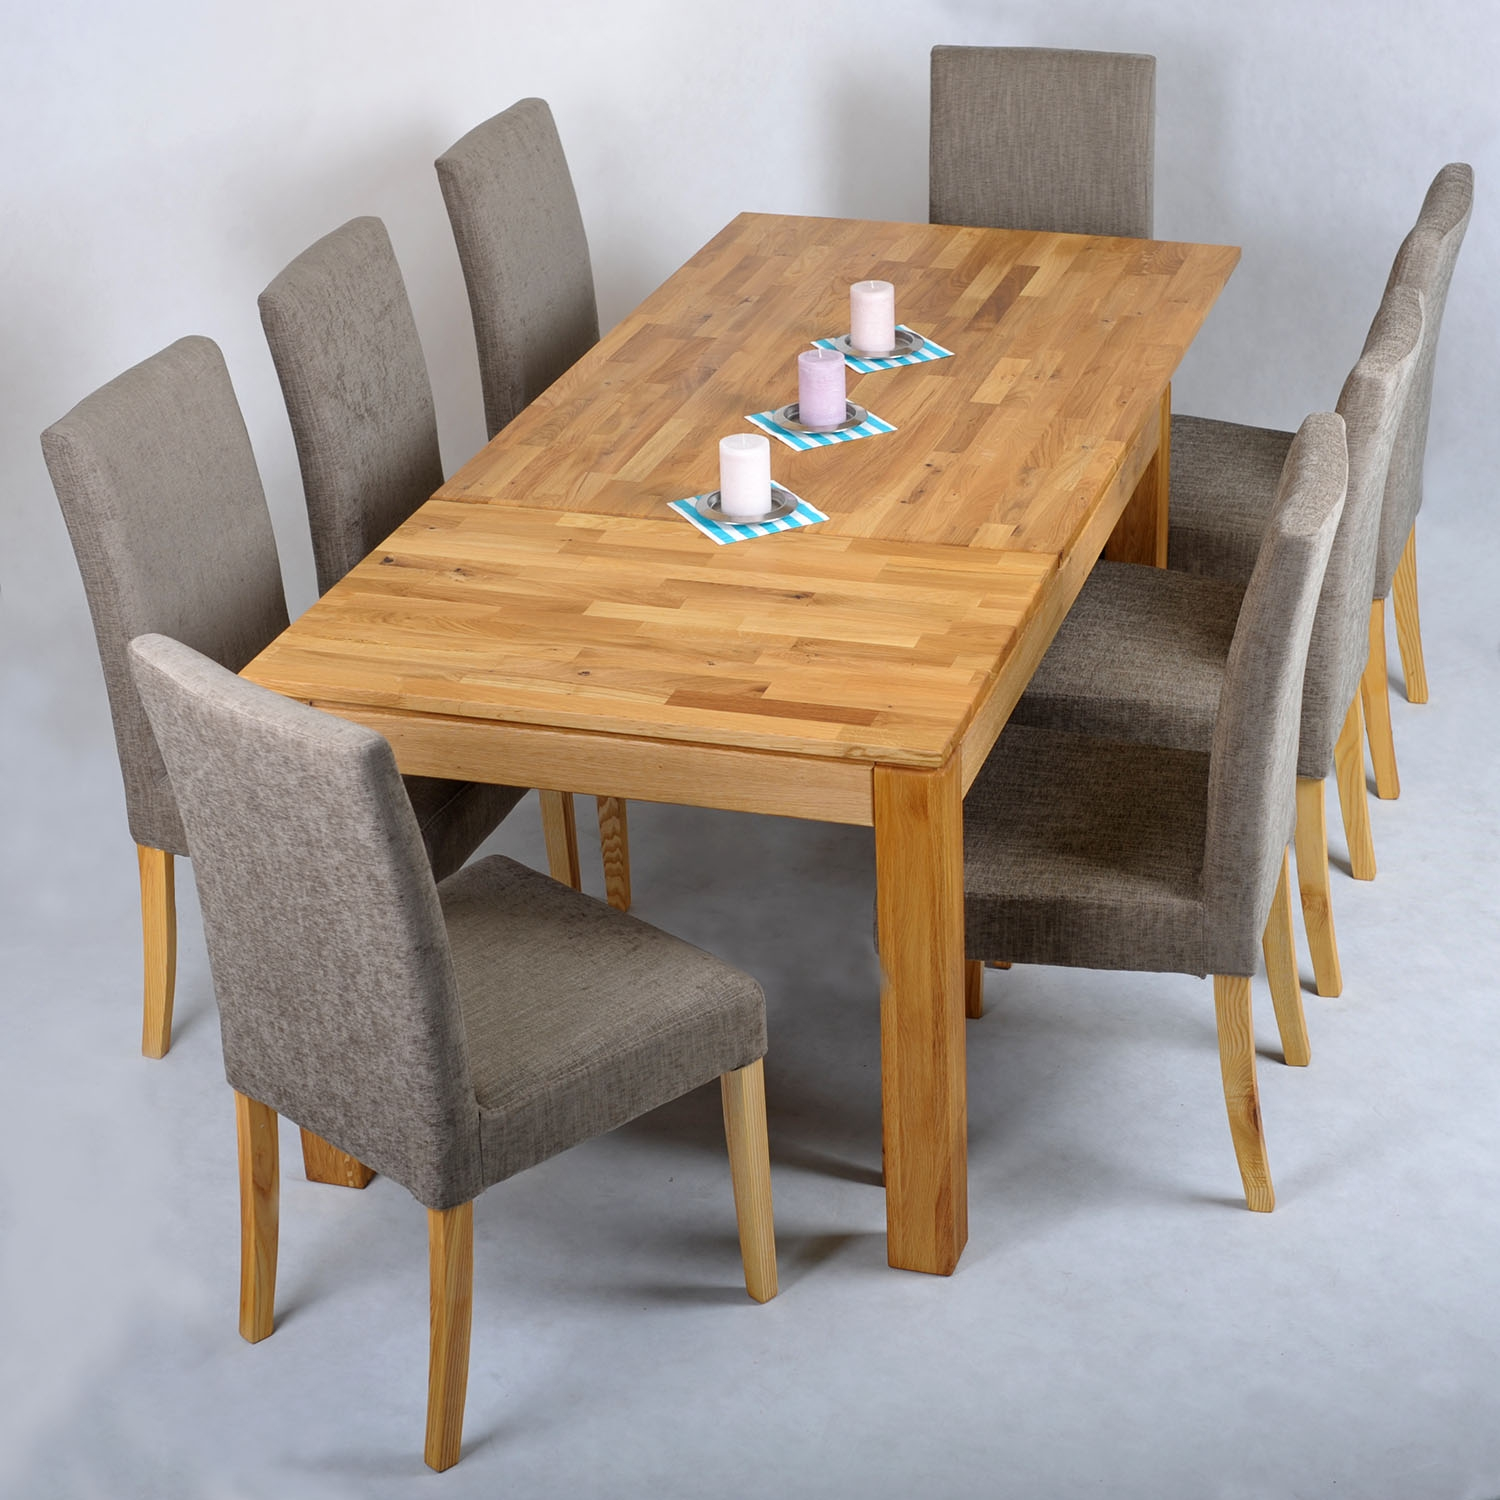 Oak Dining Tables And Chairs Cute With Images Of Oak Dining Style At Layjao